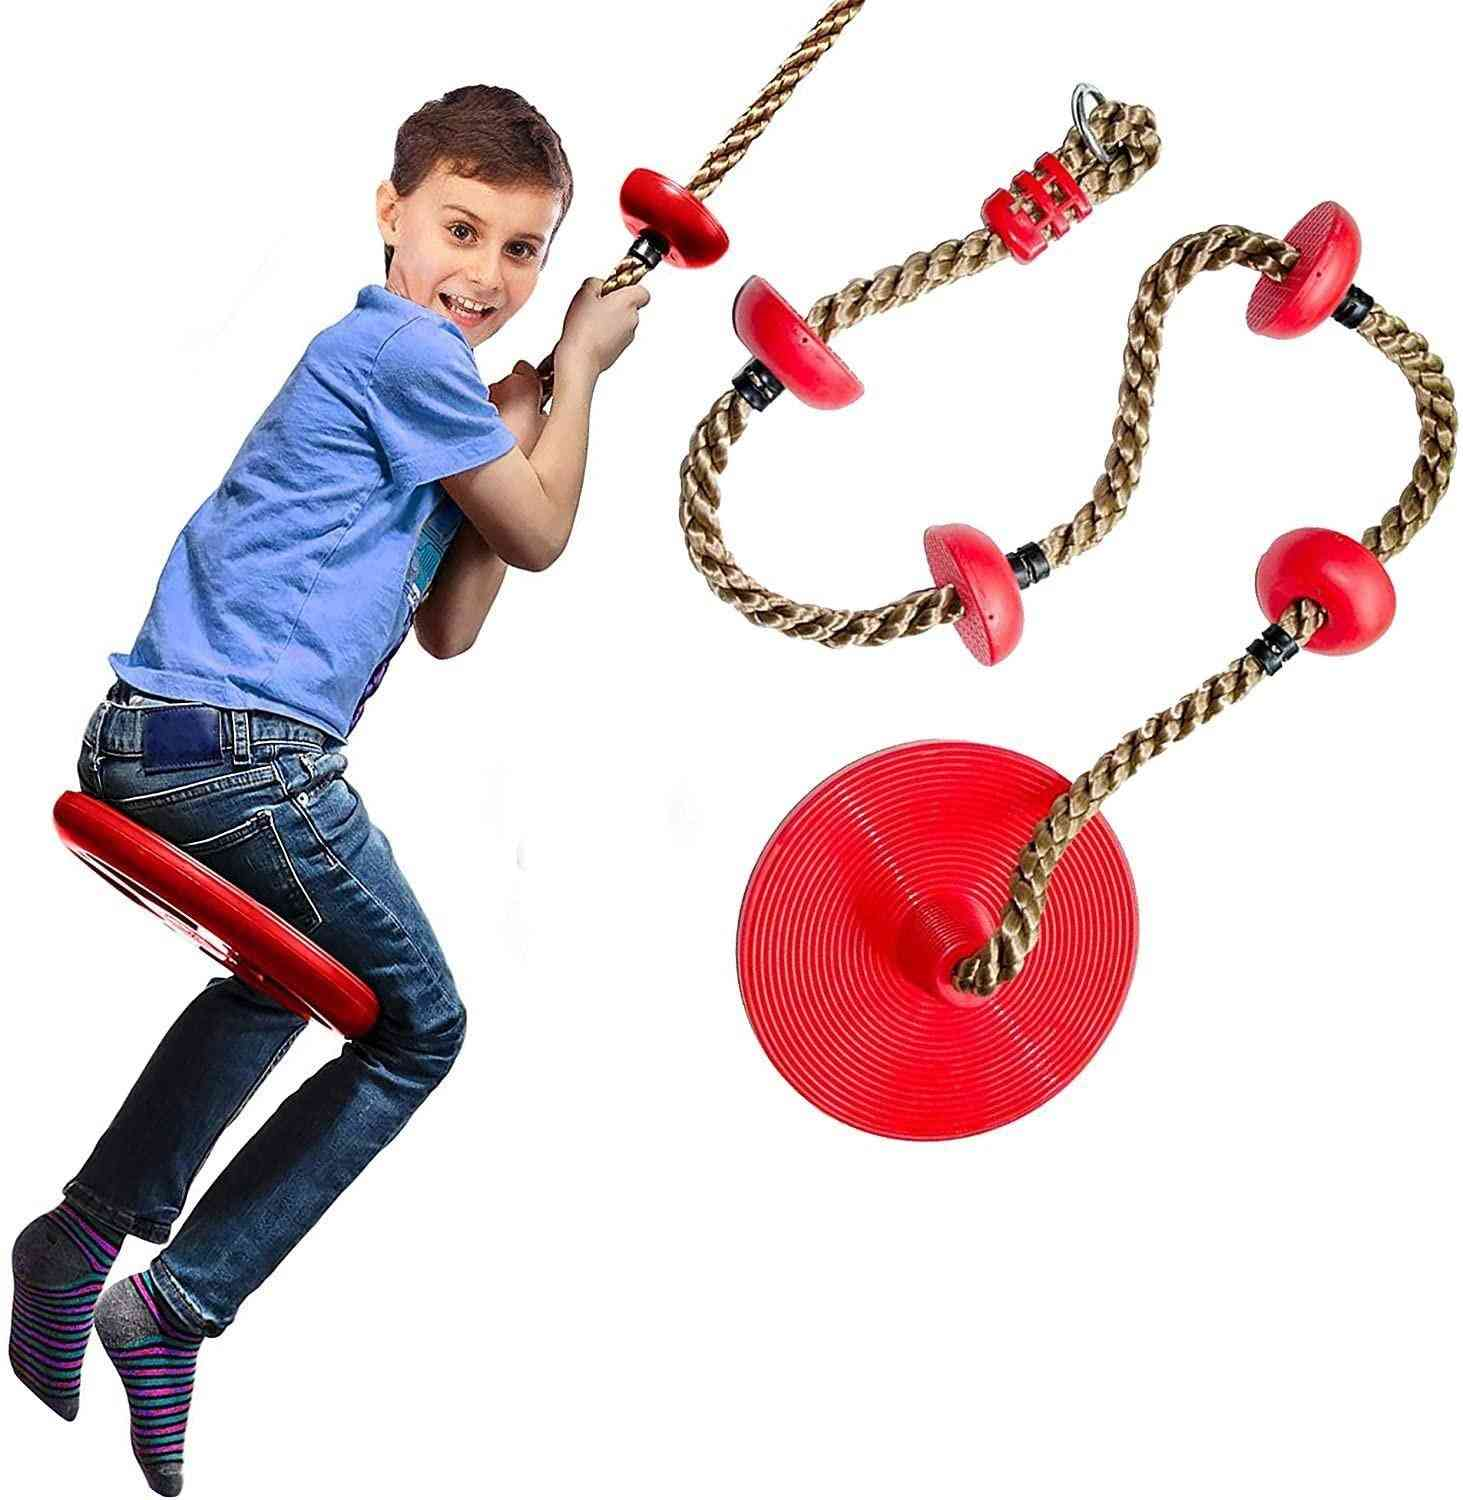 Exciting Tree Swing Climbing Rope With Platforms / Strap For Tree